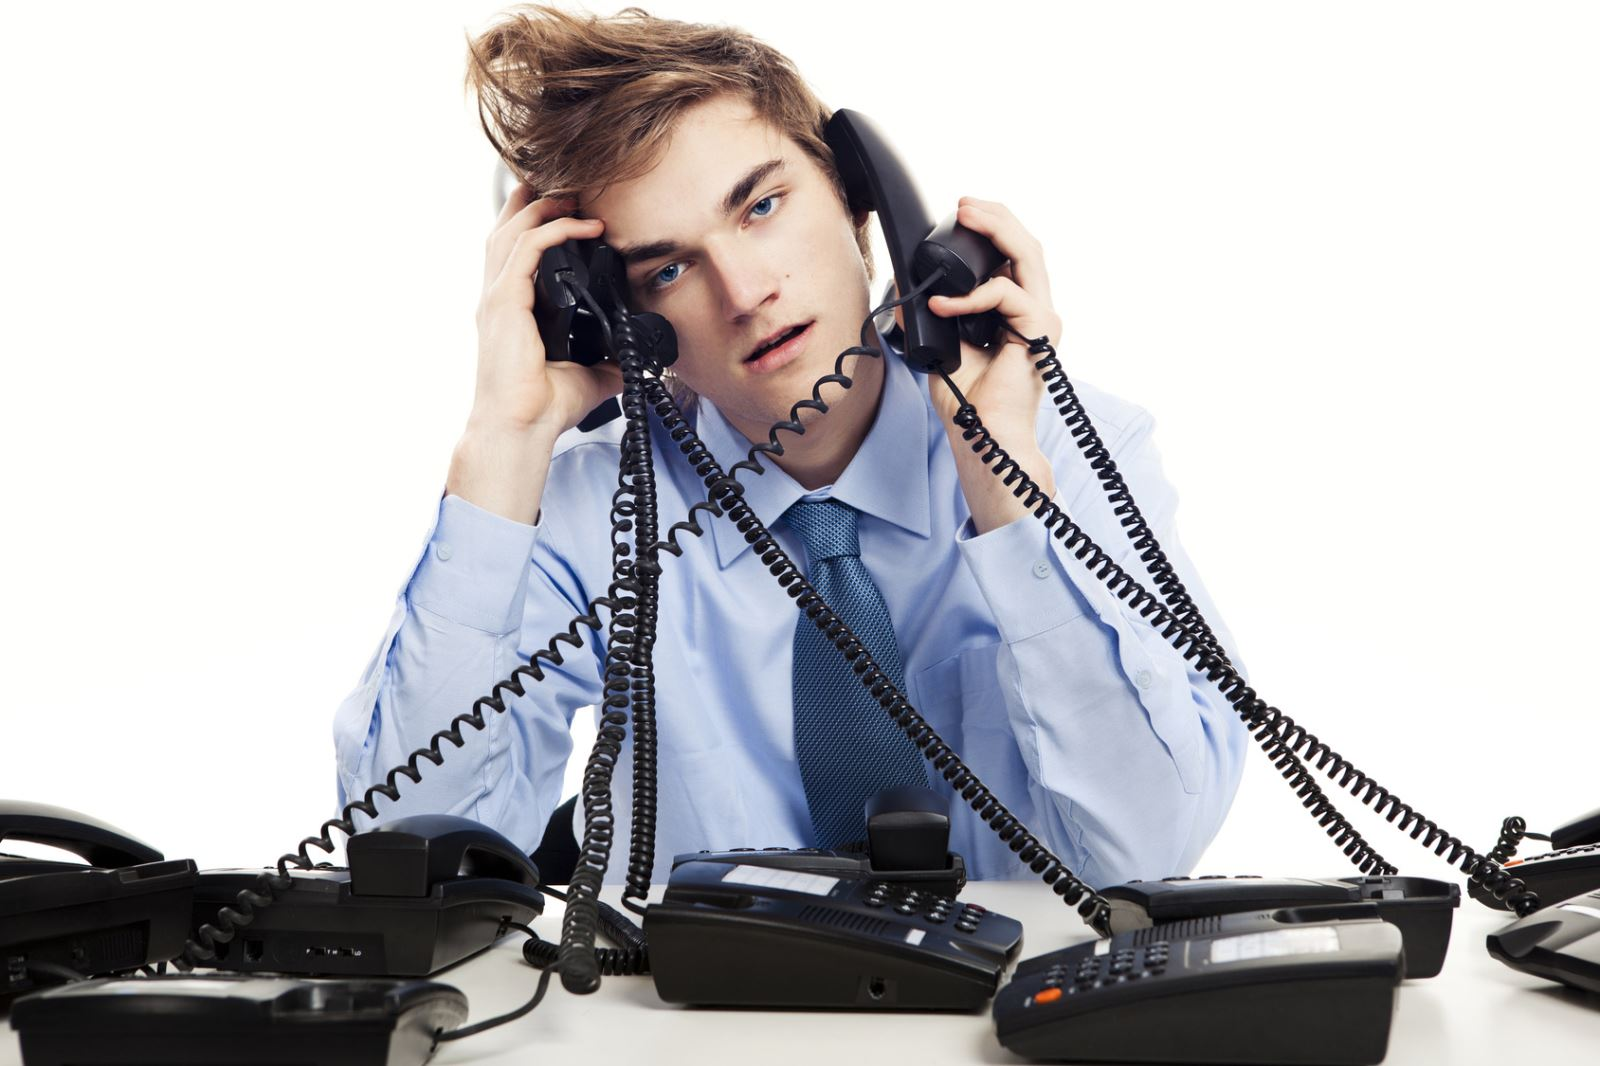 The end of the line - Call centres